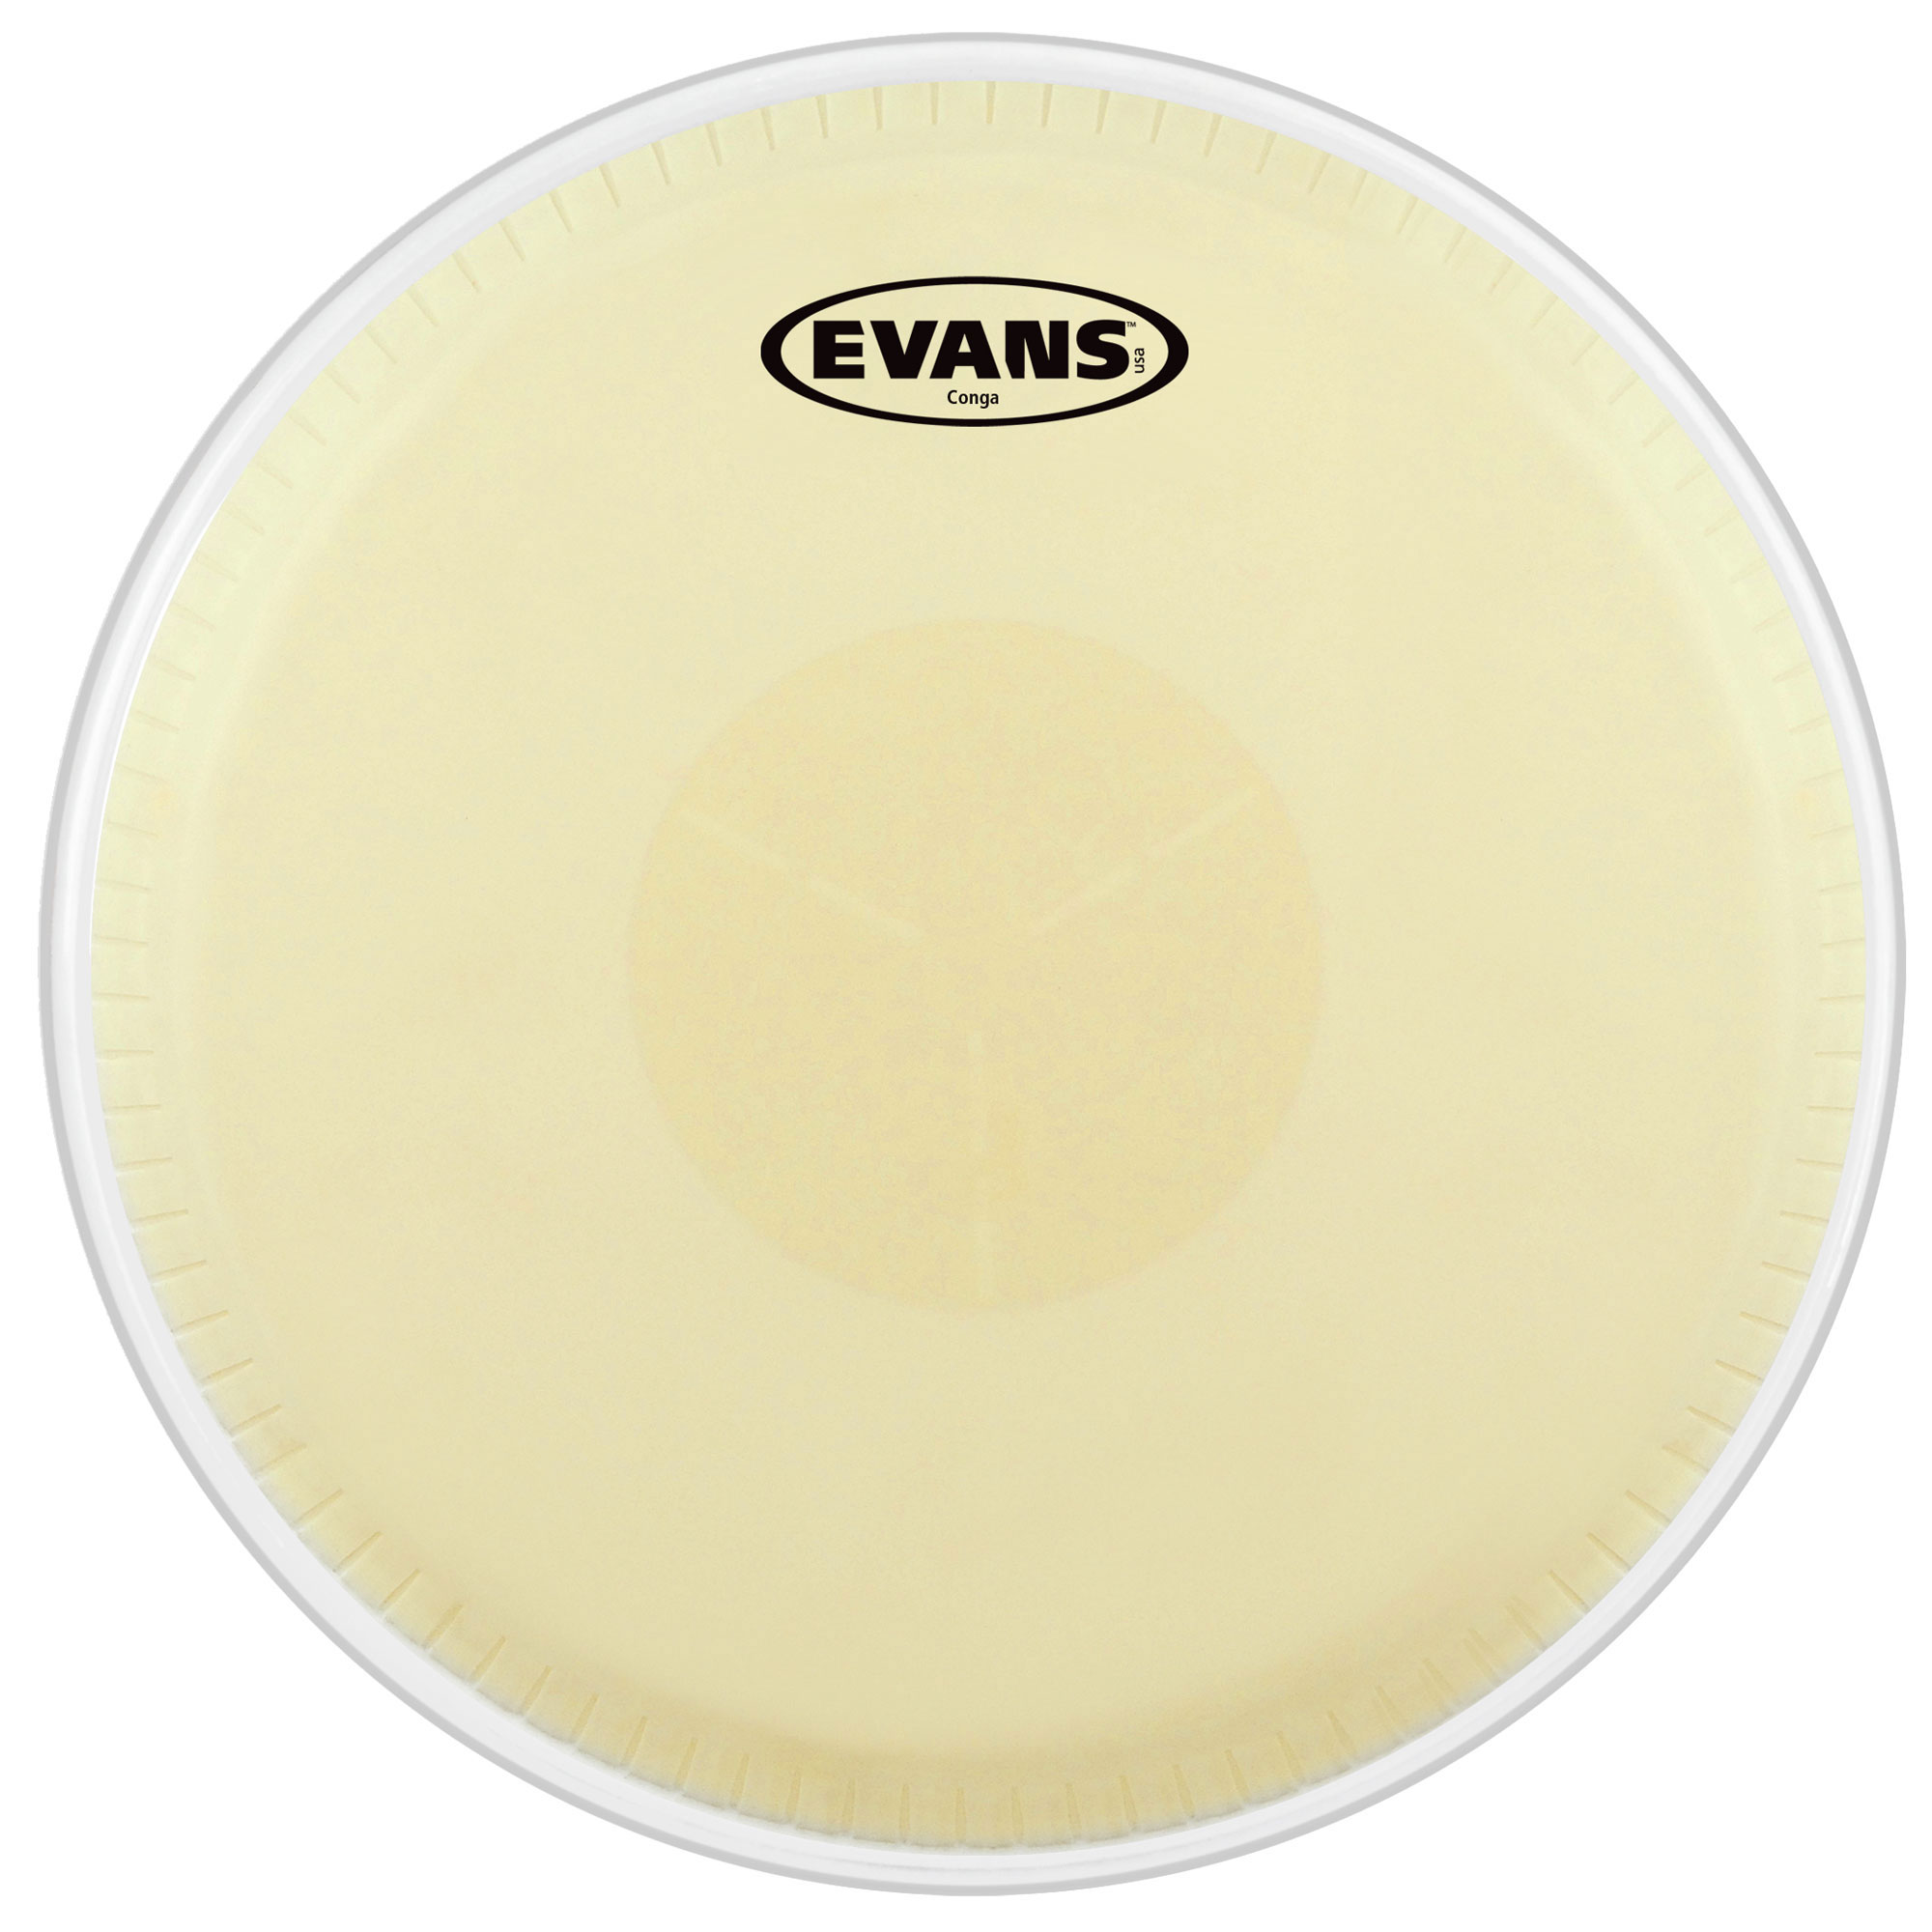 "Evans 12.5"" Tri-Center Extended Conga Head"